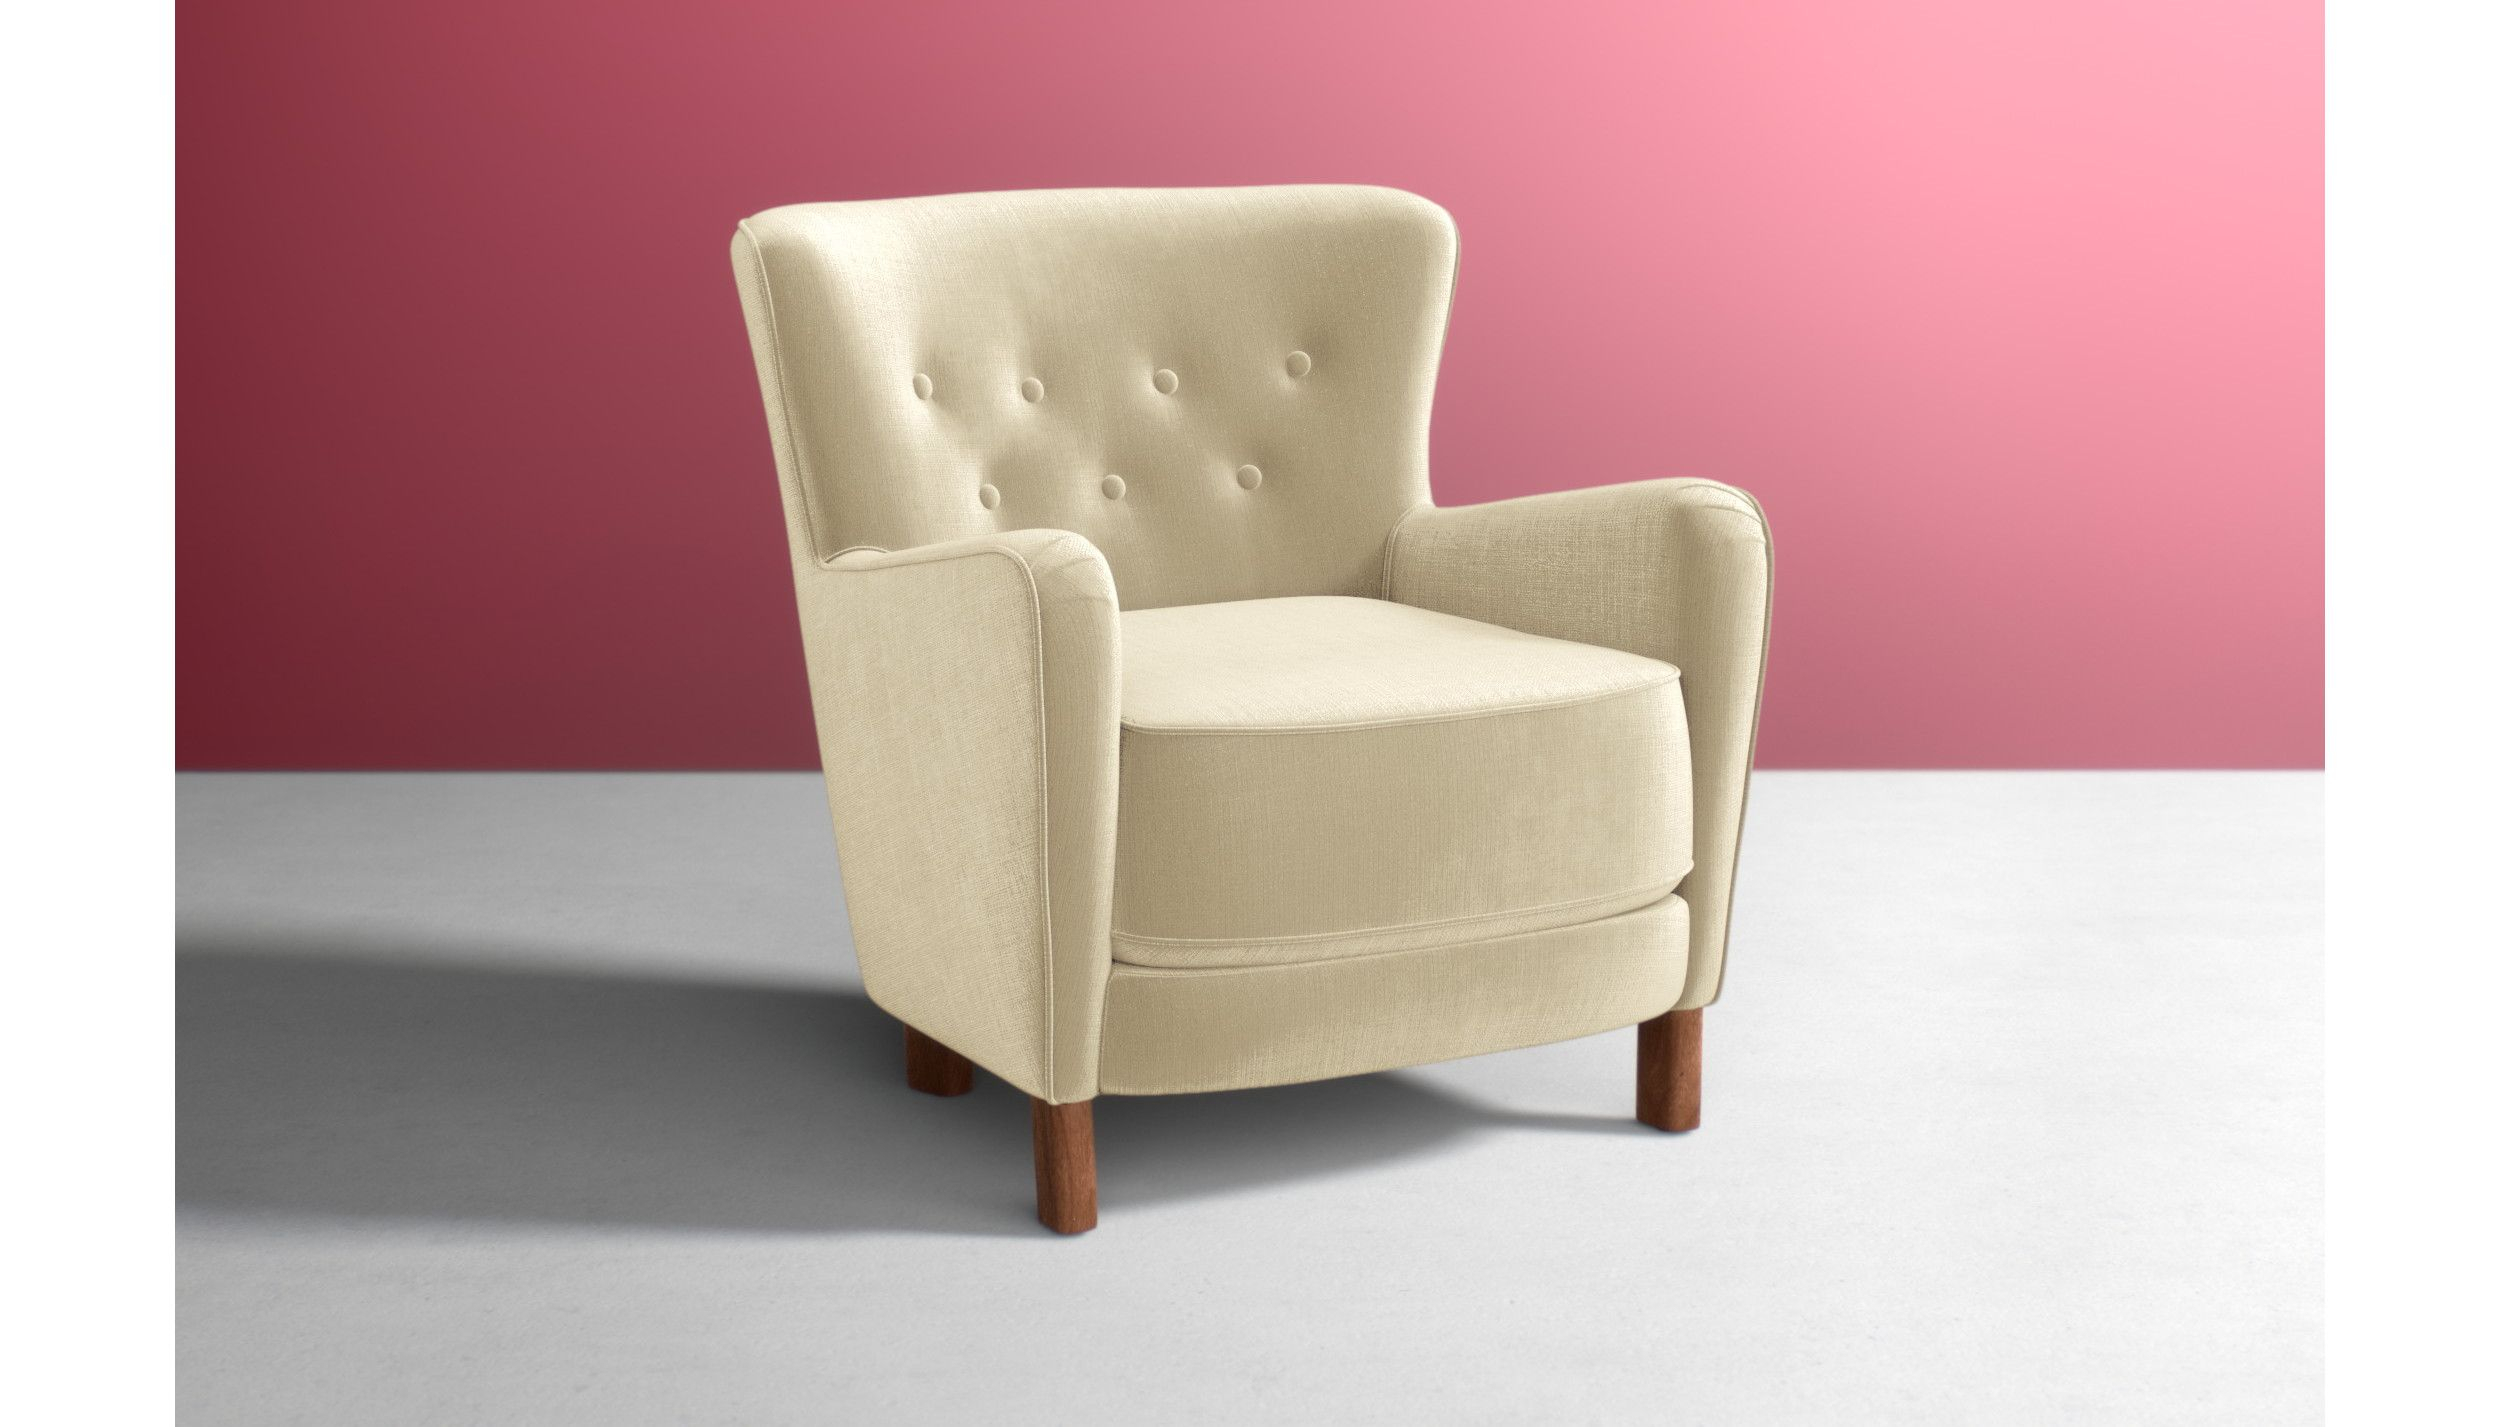 Hartwell Chair | West Twelve | Pinterest In Circuit Swivel Accent Chairs (Image 8 of 20)